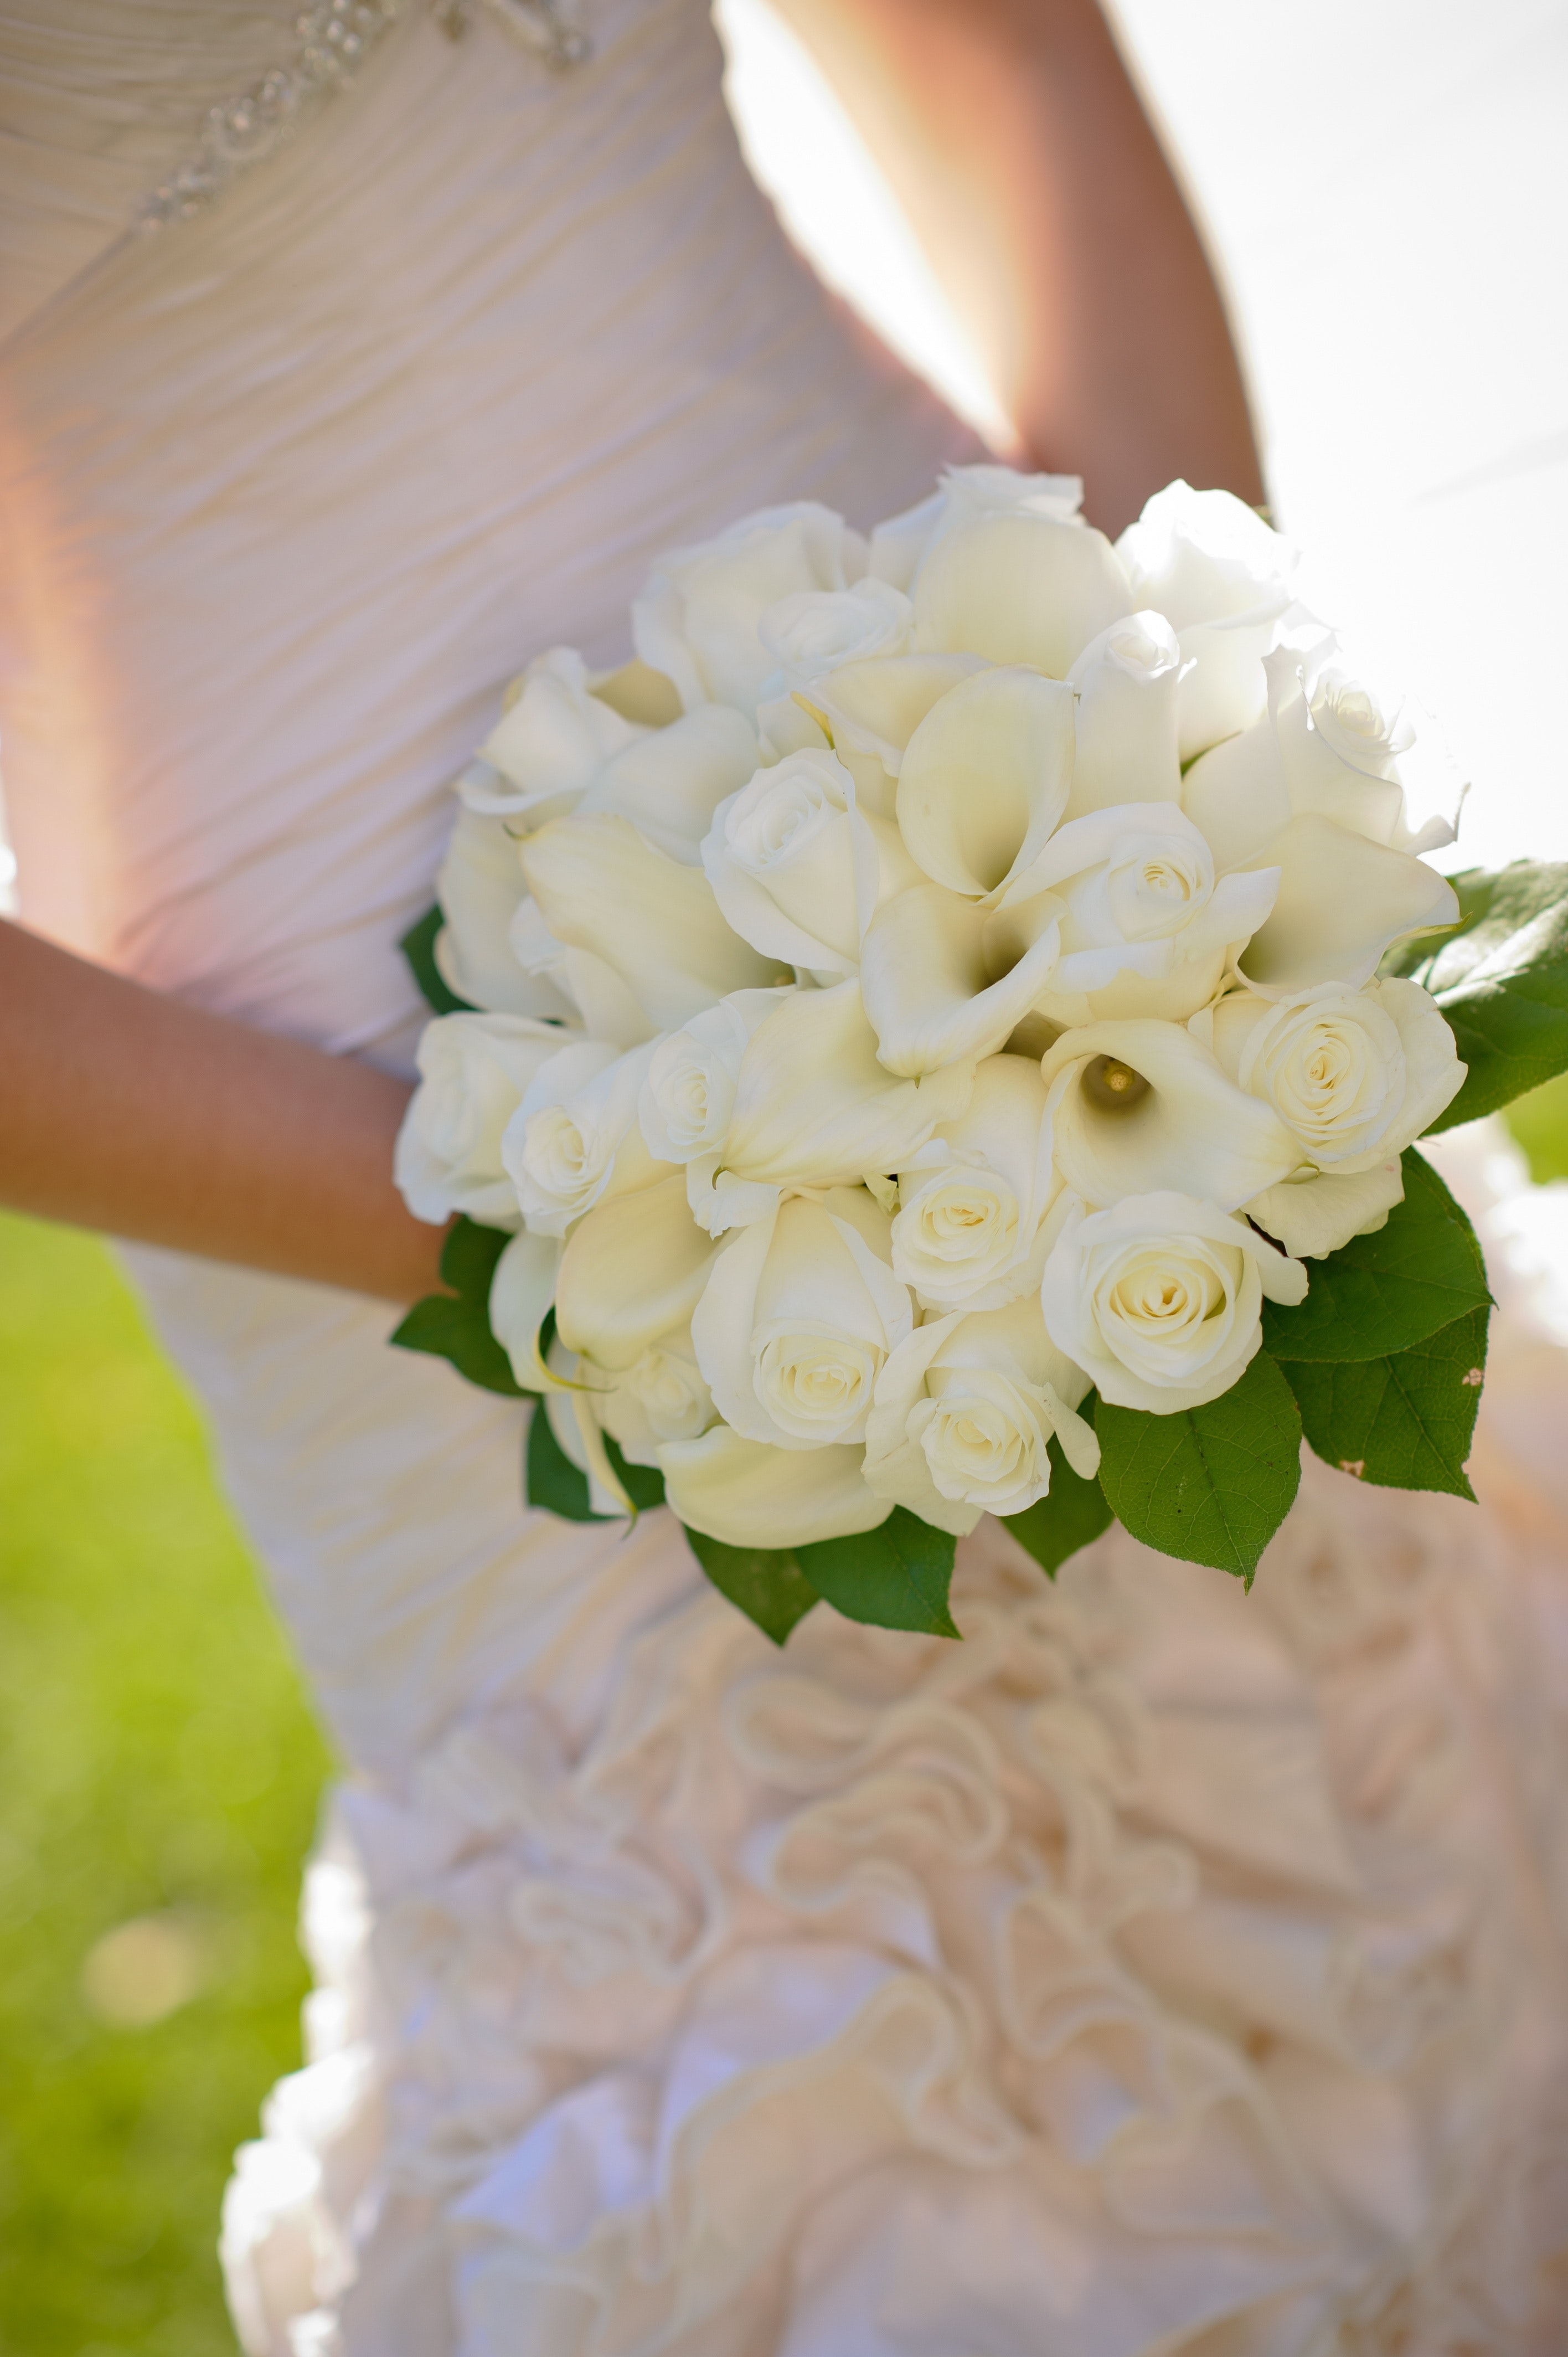 Person Holding Bouquet of Flower \u00b7 Free Stock Photo